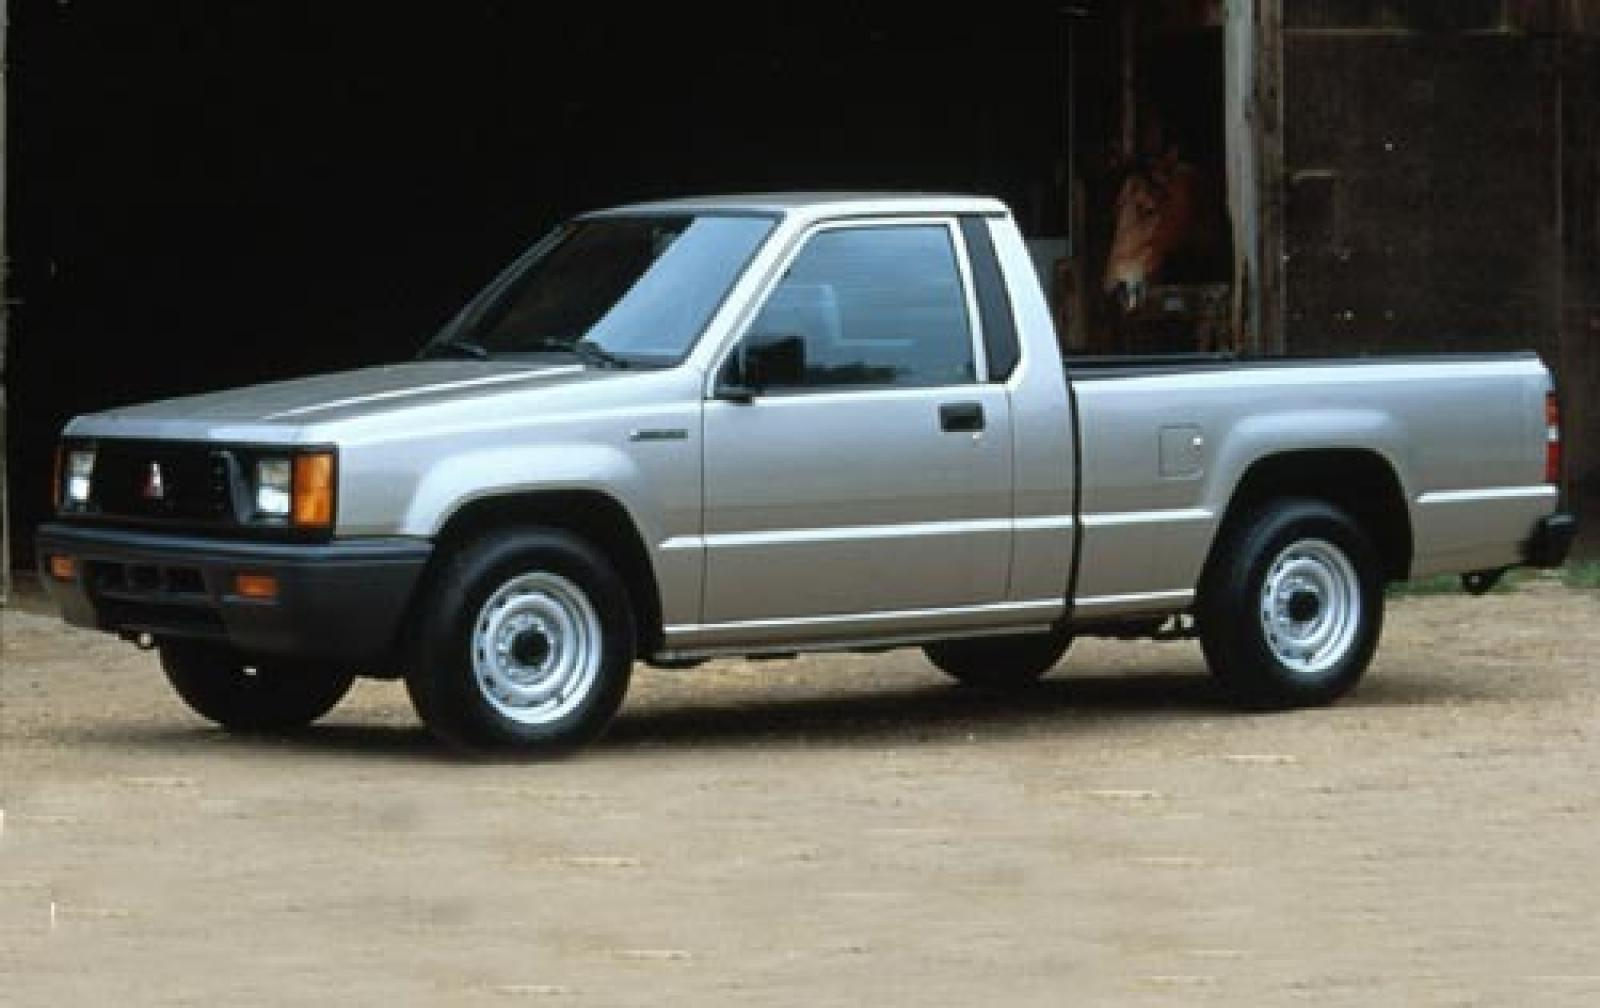 1996 mitsubishi mighty max pickup 1 800 1024 1280 1600 origin